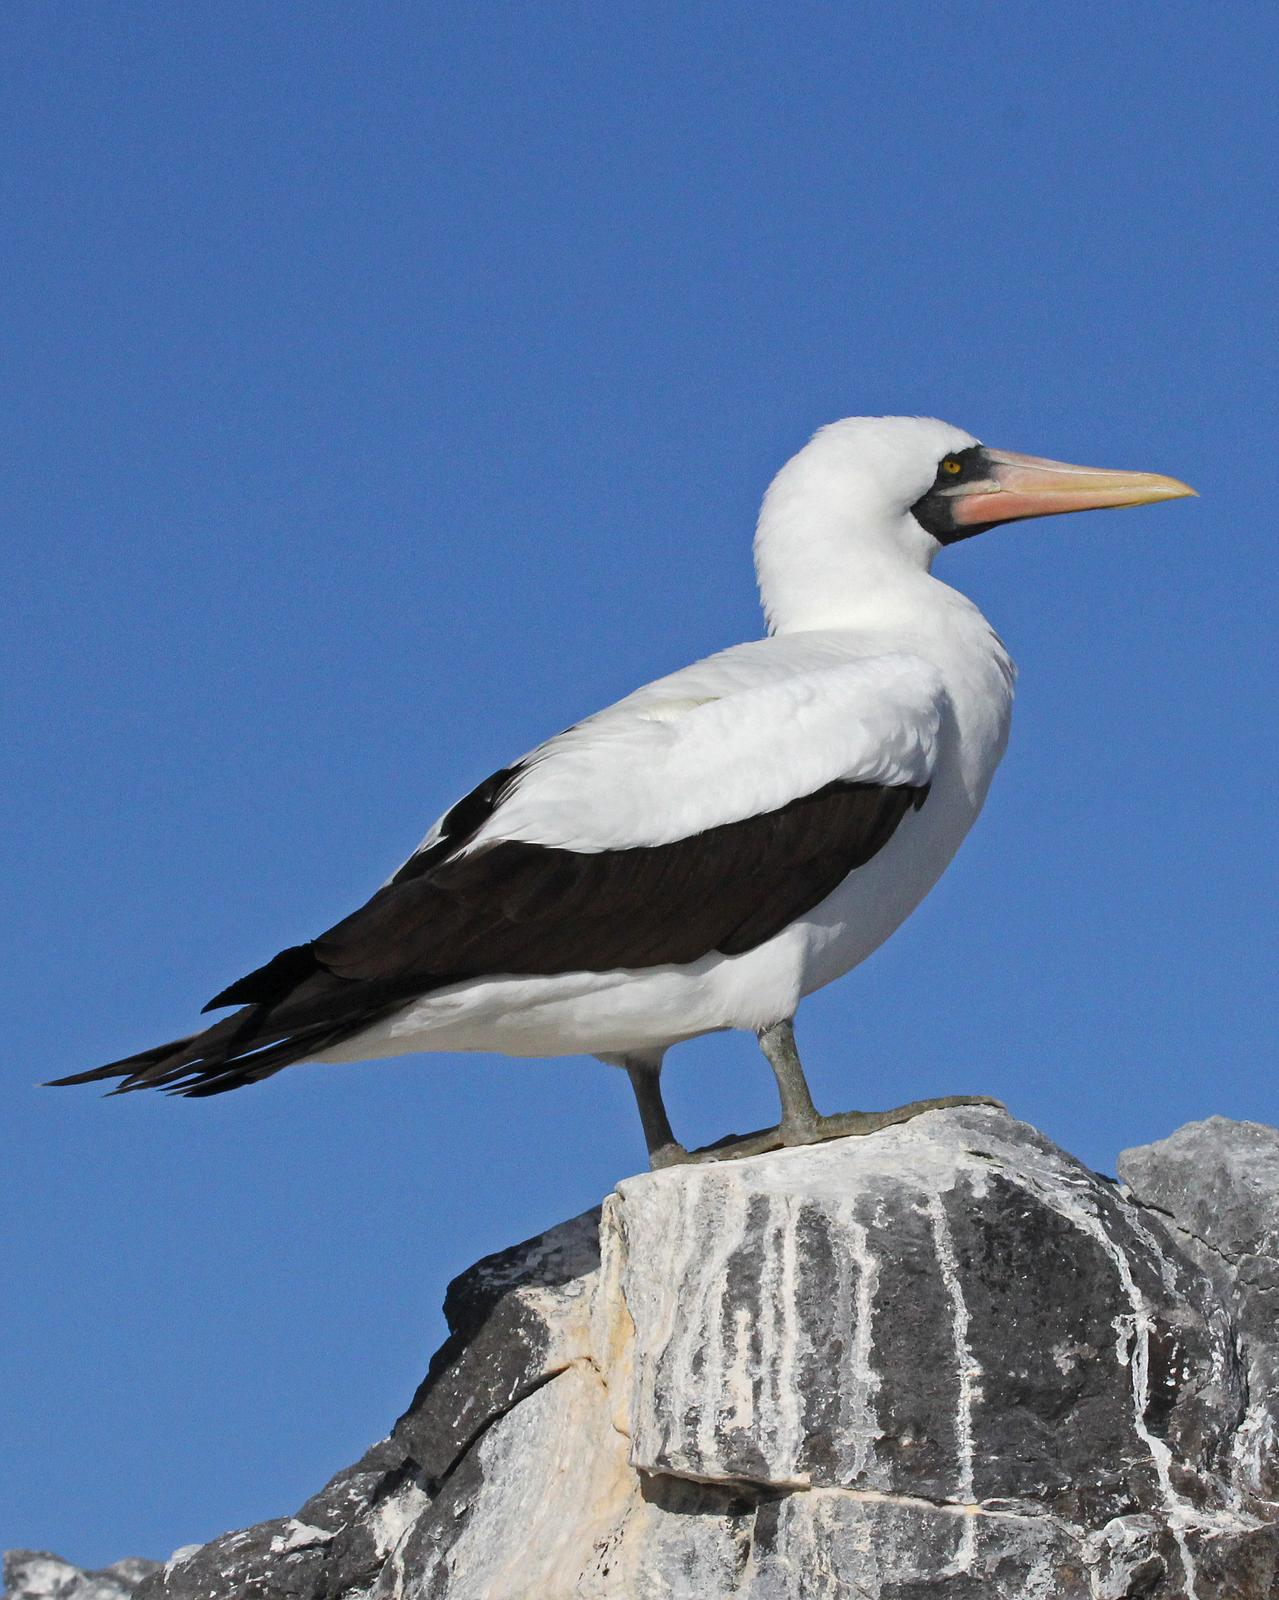 Nazca Booby Photo by Robert Polkinghorn